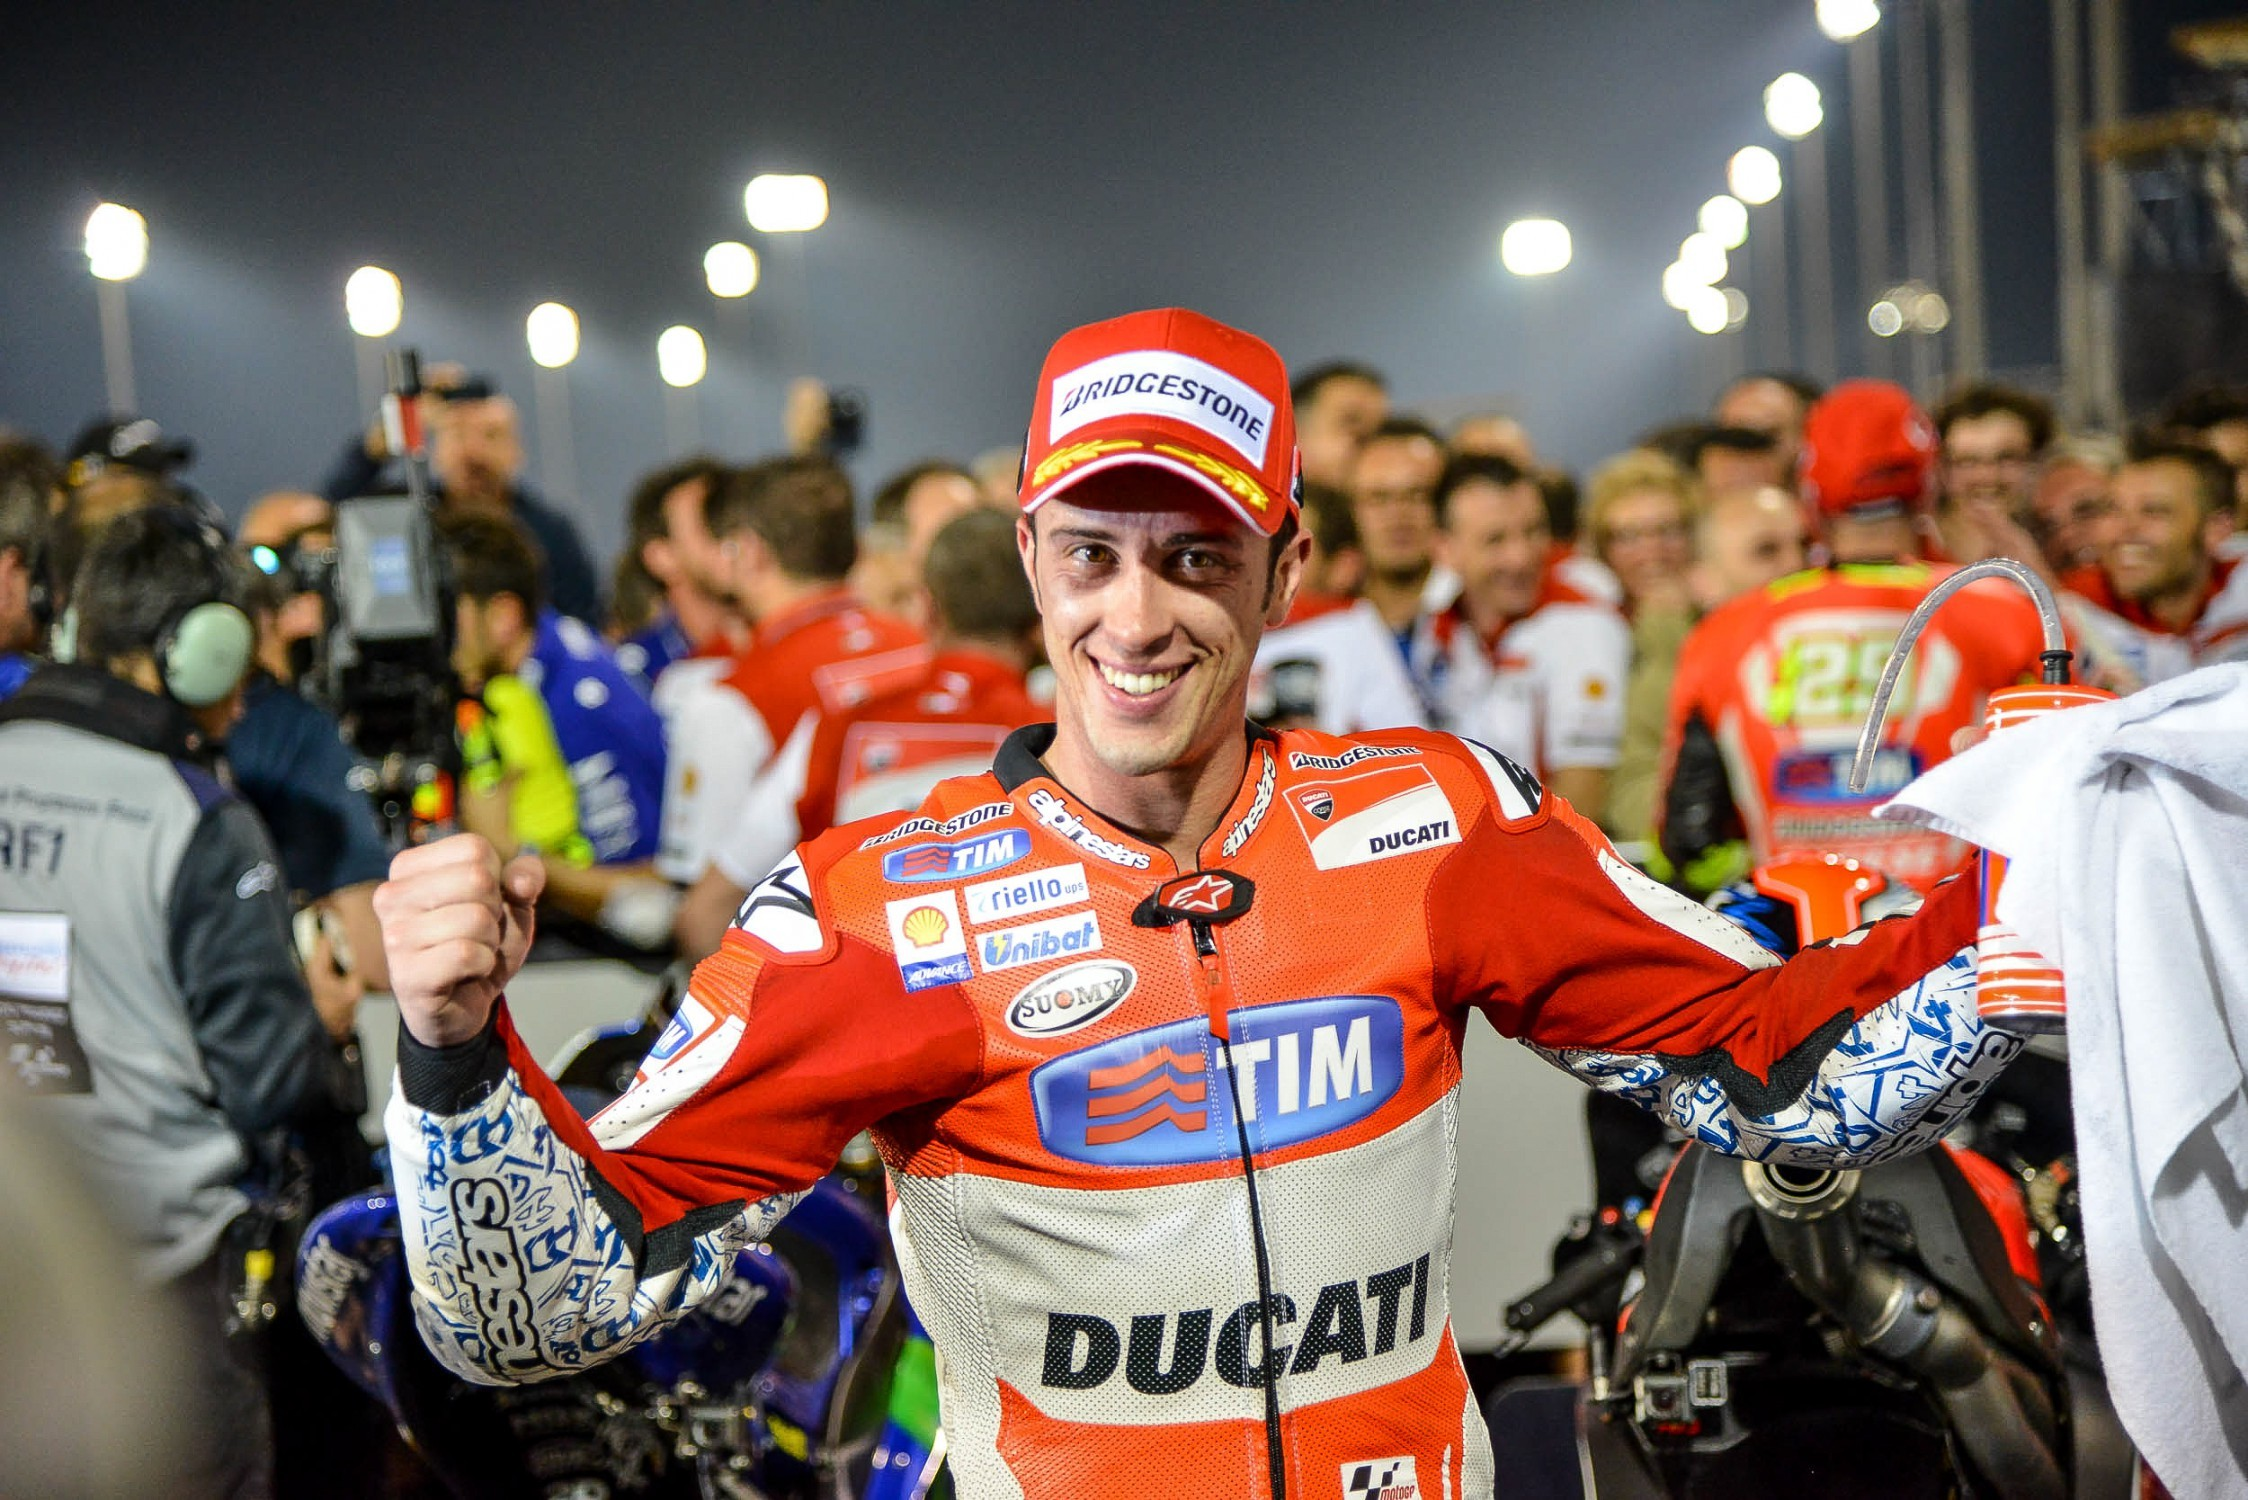 rossi wins 2015 debut race in qatar, ducati blows competition away